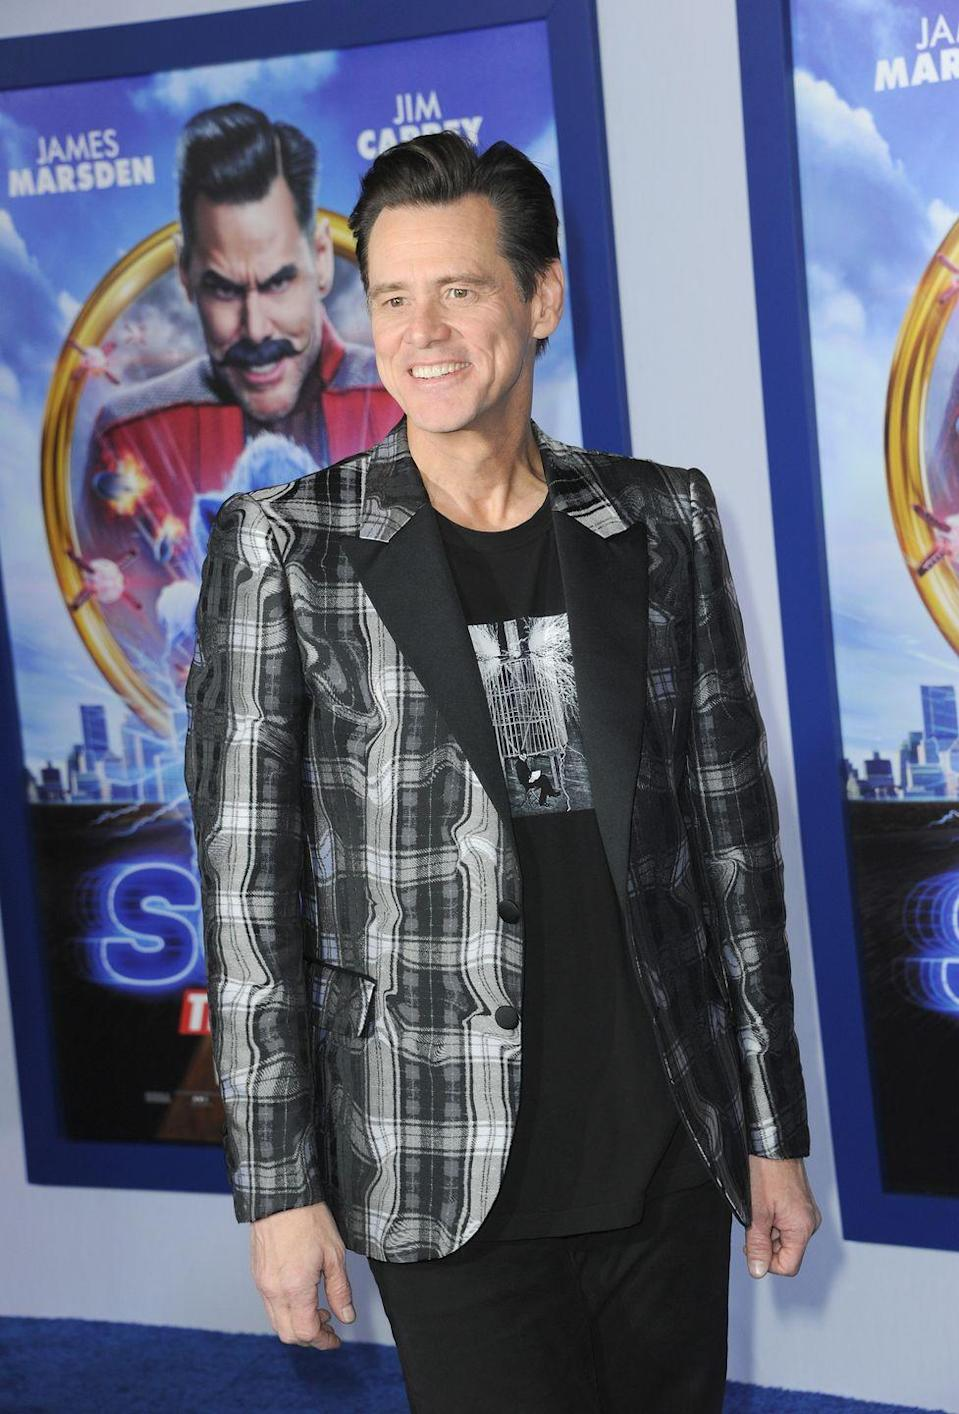 <p>Carrey has stepped back a bit from his comedic roles and explores other areas these days. He appeared in two documentaries, has wrote a book, and produces. He recently appeared in the family-friendly <em>Sonic the Hedgehog</em> movie as Robotnik. Carrey is also open about his struggle with depression. </p>